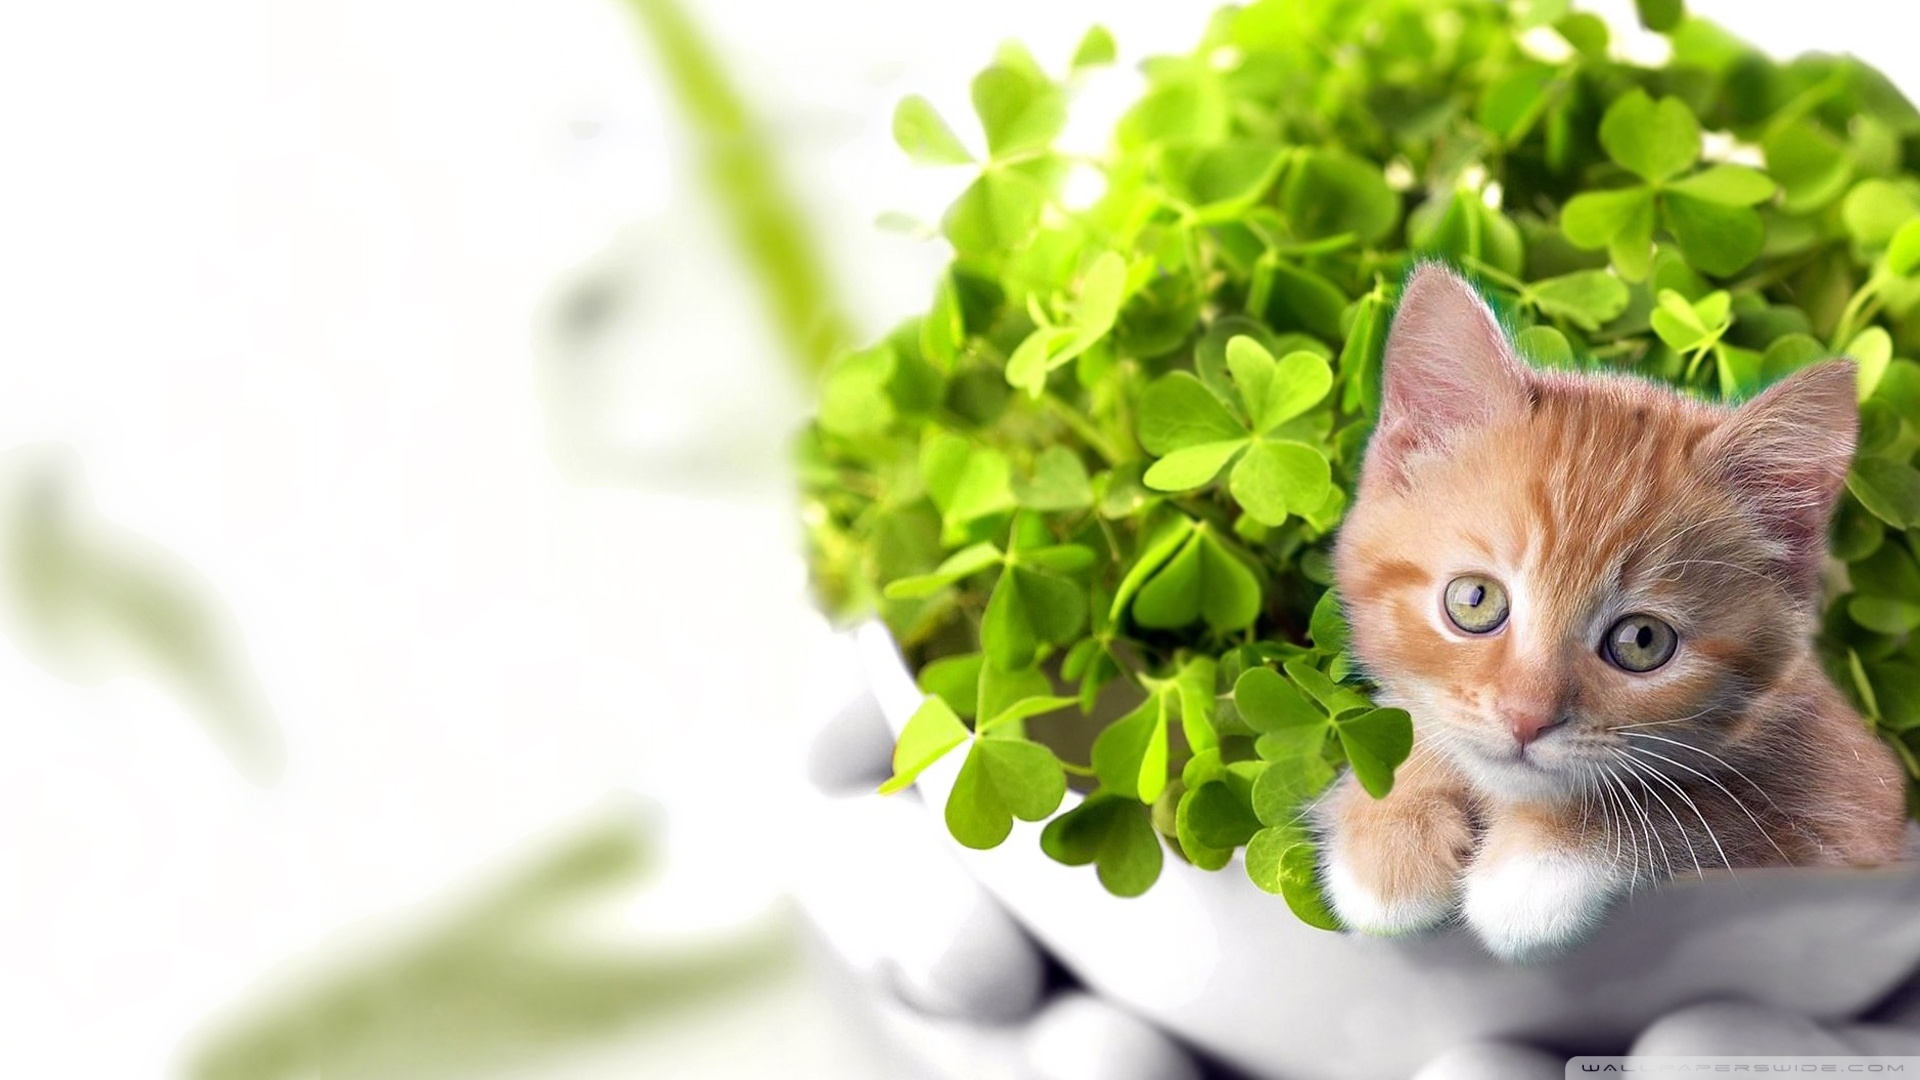 36] St Patricks Day Cat Wallpaper on WallpaperSafari 1920x1080